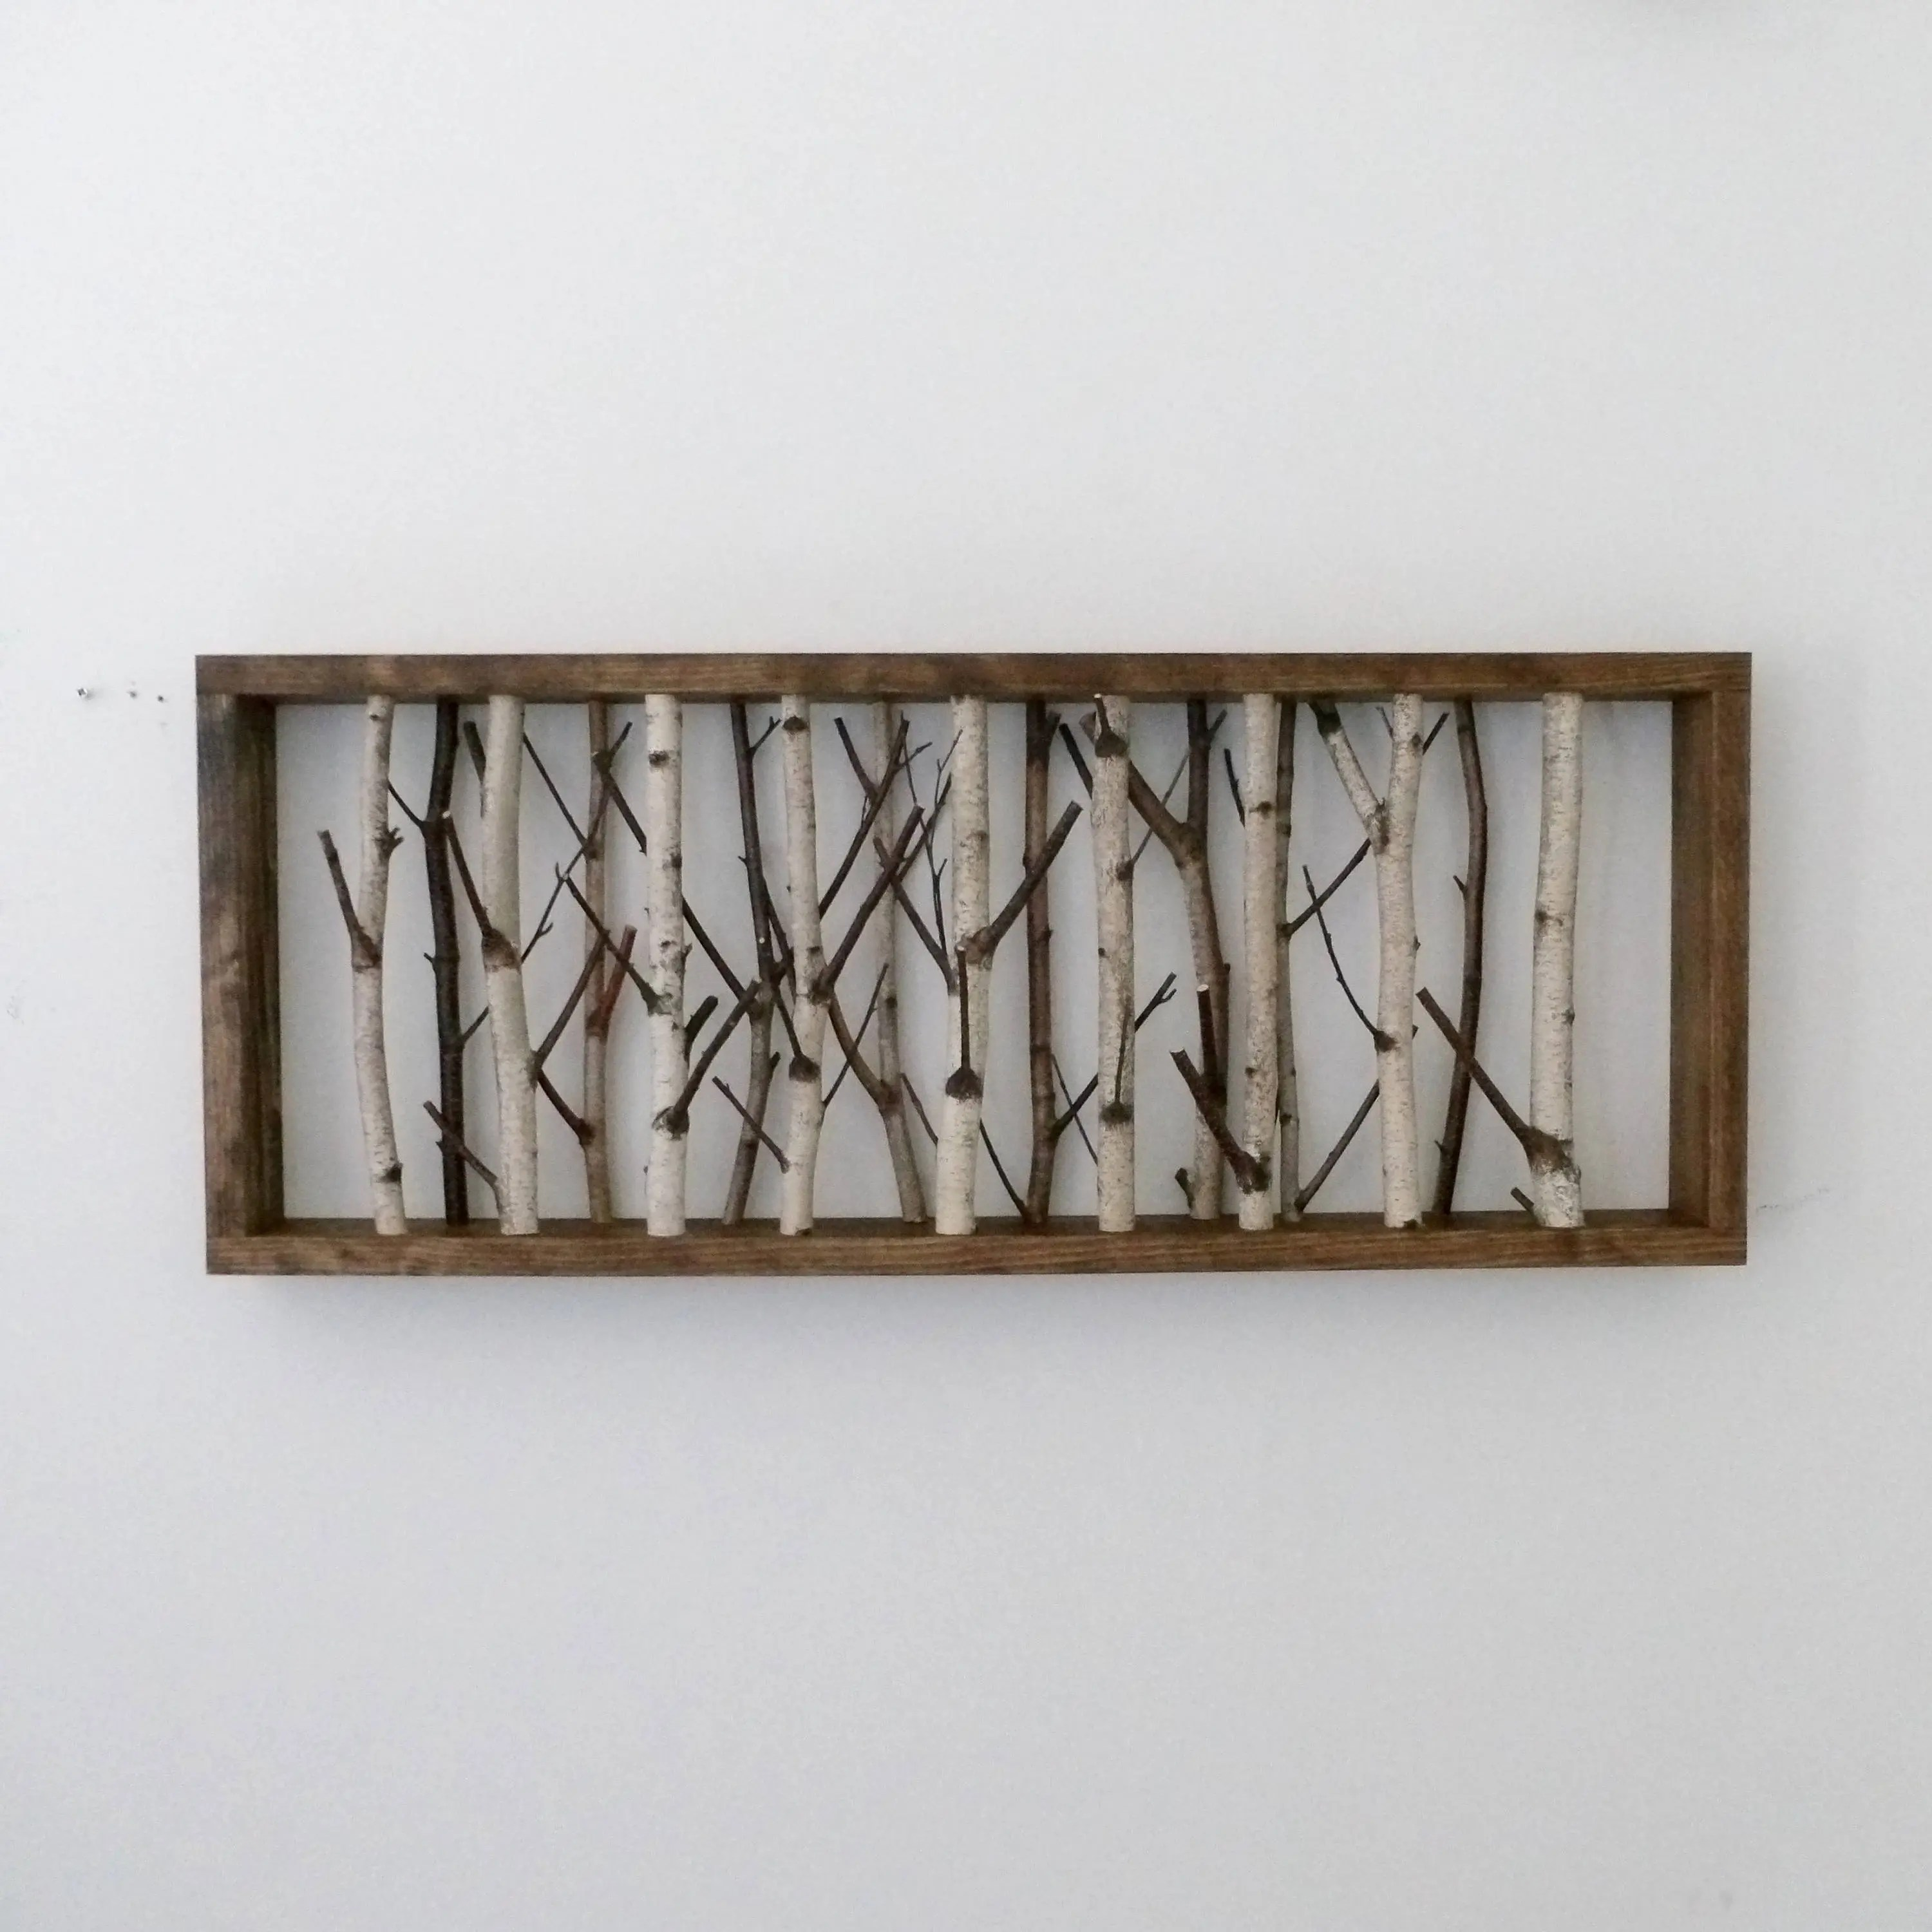 white birch forest wall art x birch branch decor etsy